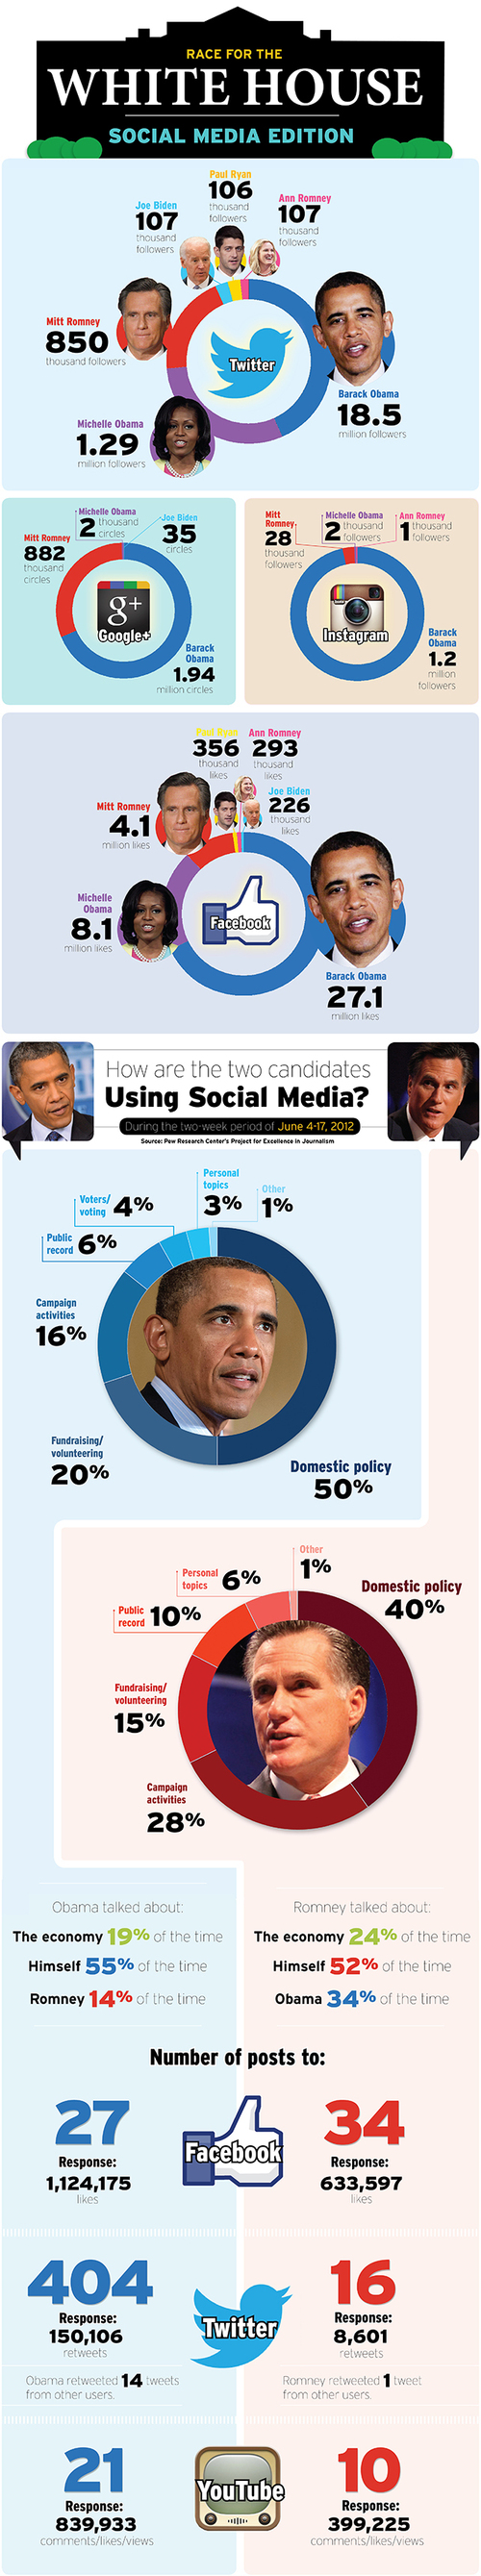 Barack Obama Mitt Romney Info Graphic